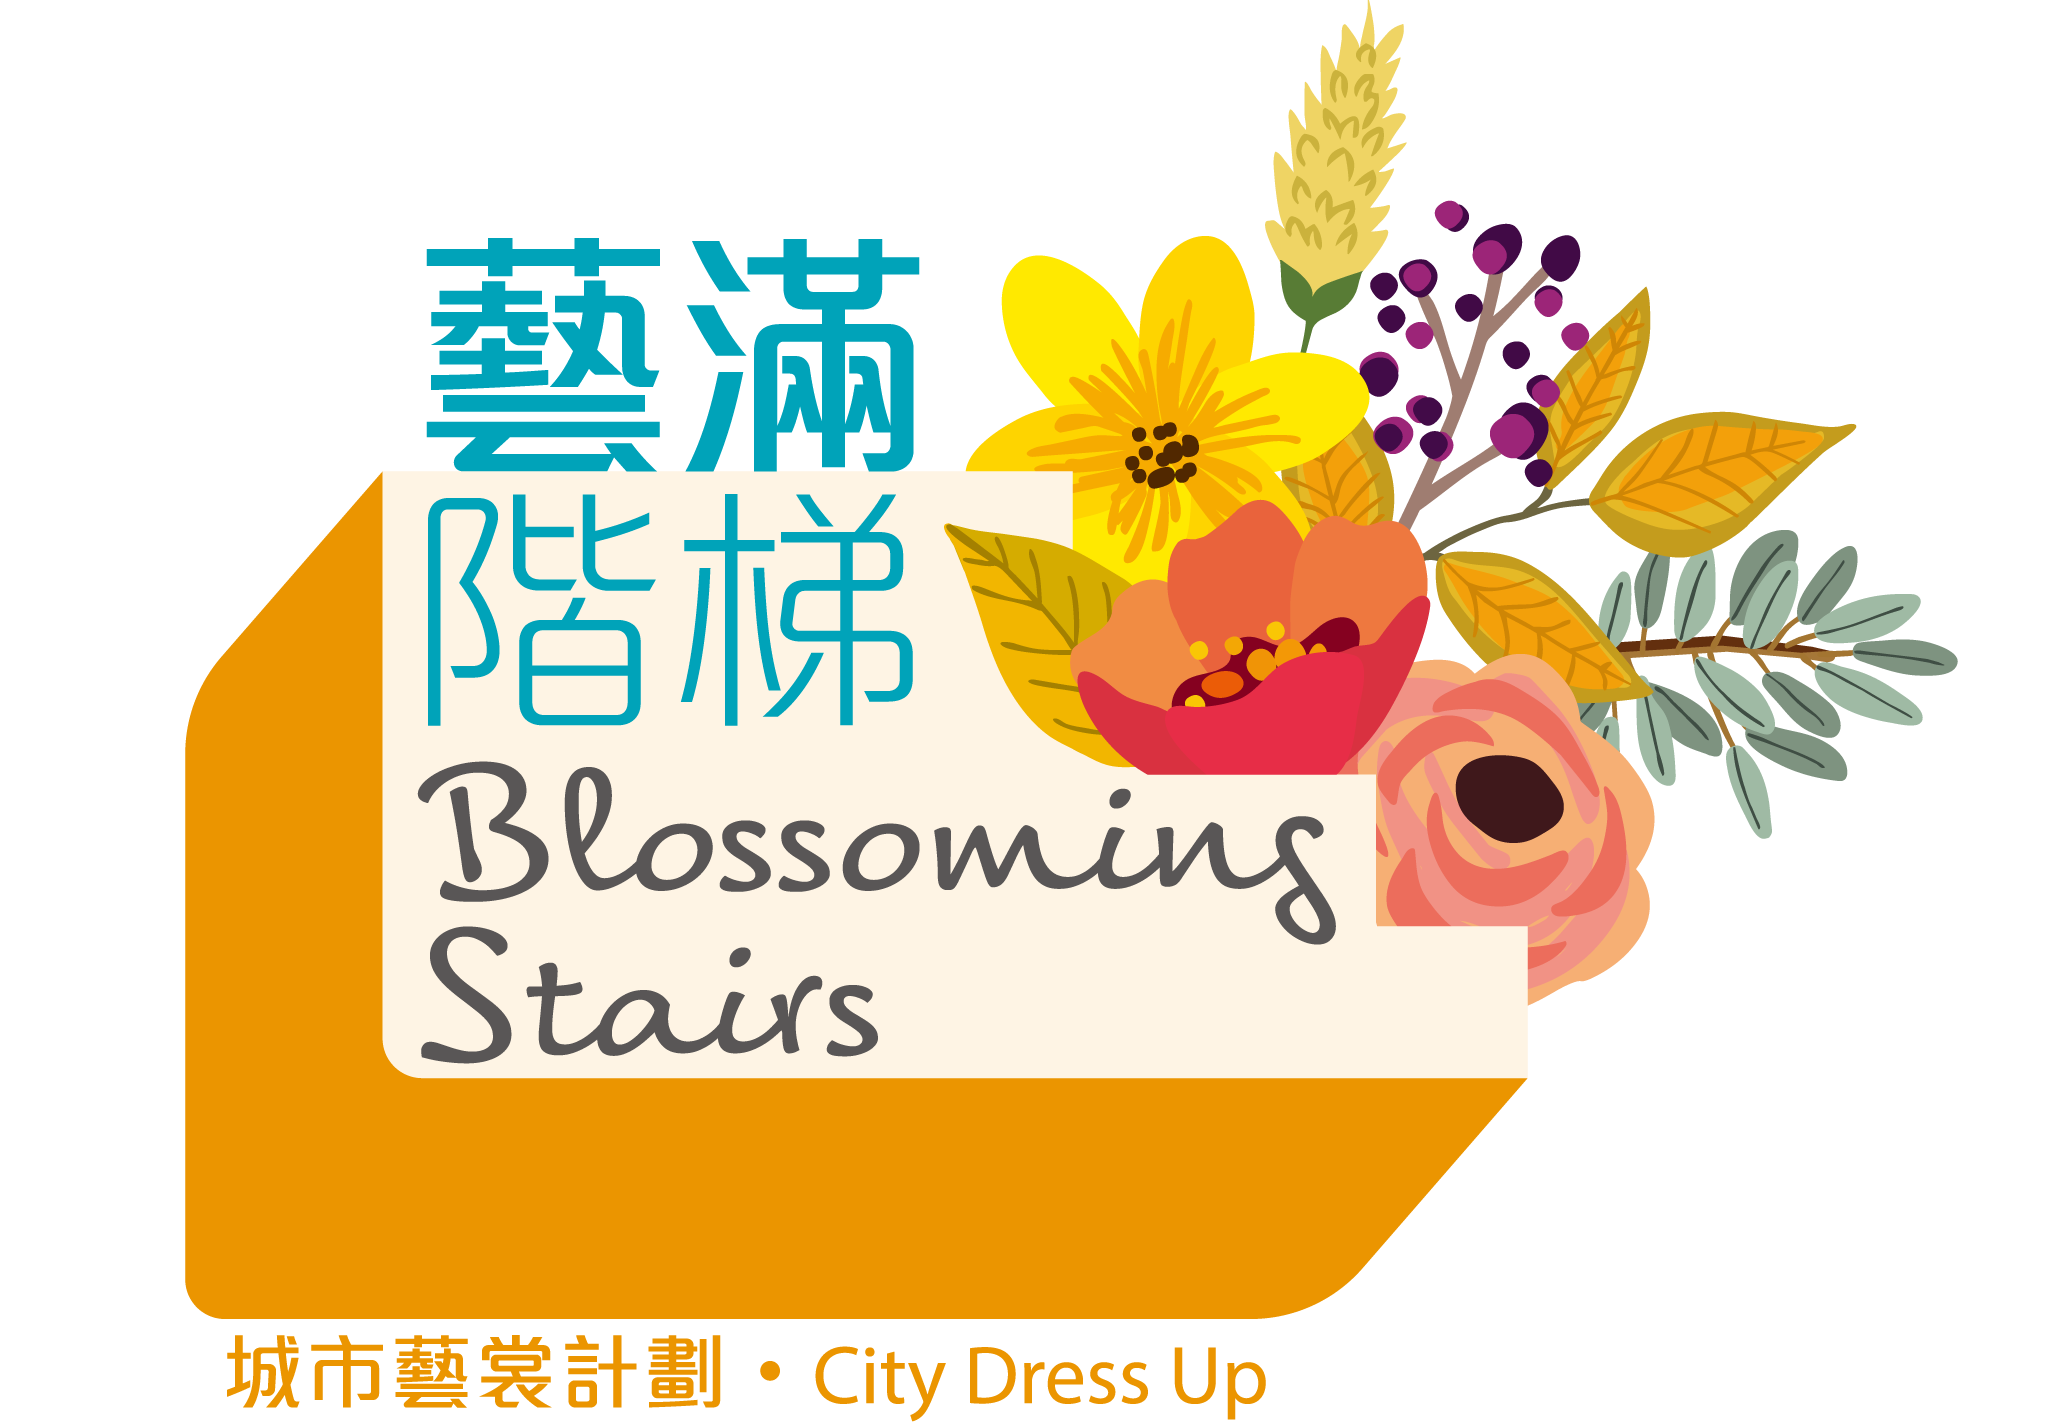 Blossoming Stairs